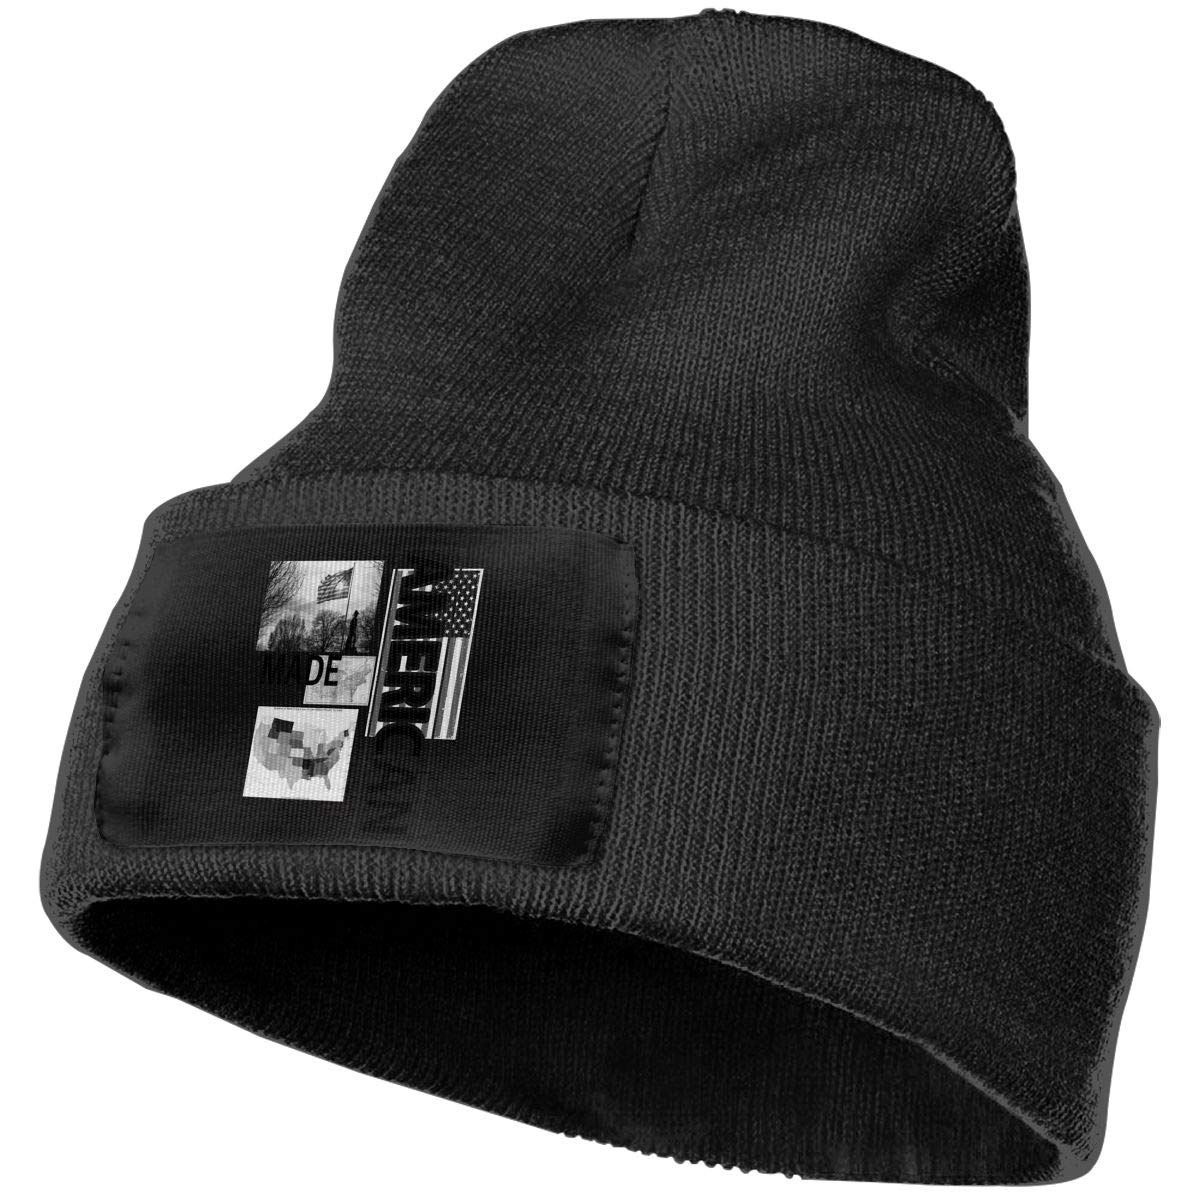 SLADDD1 American All States Map with Made Warm Winter Hat Knit Beanie Skull Cap Cuff Beanie Hat Winter Hats for Men /& Women